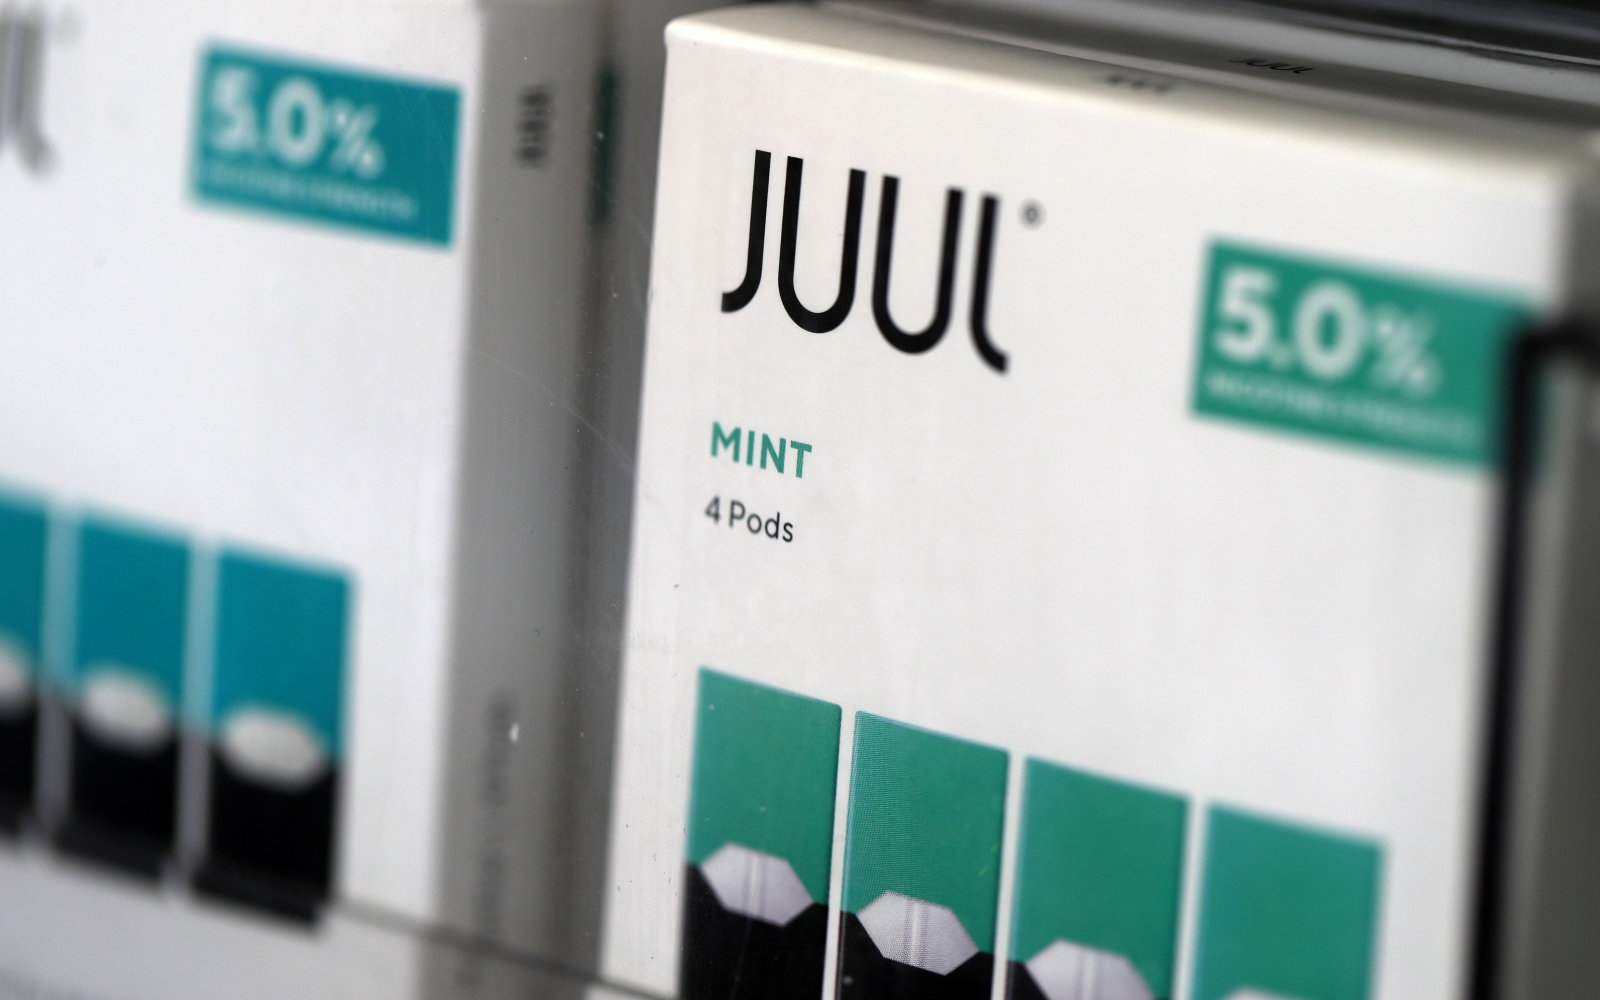 NY Attorney General sues Juul for deceptive marketing | DeviceDaily.com